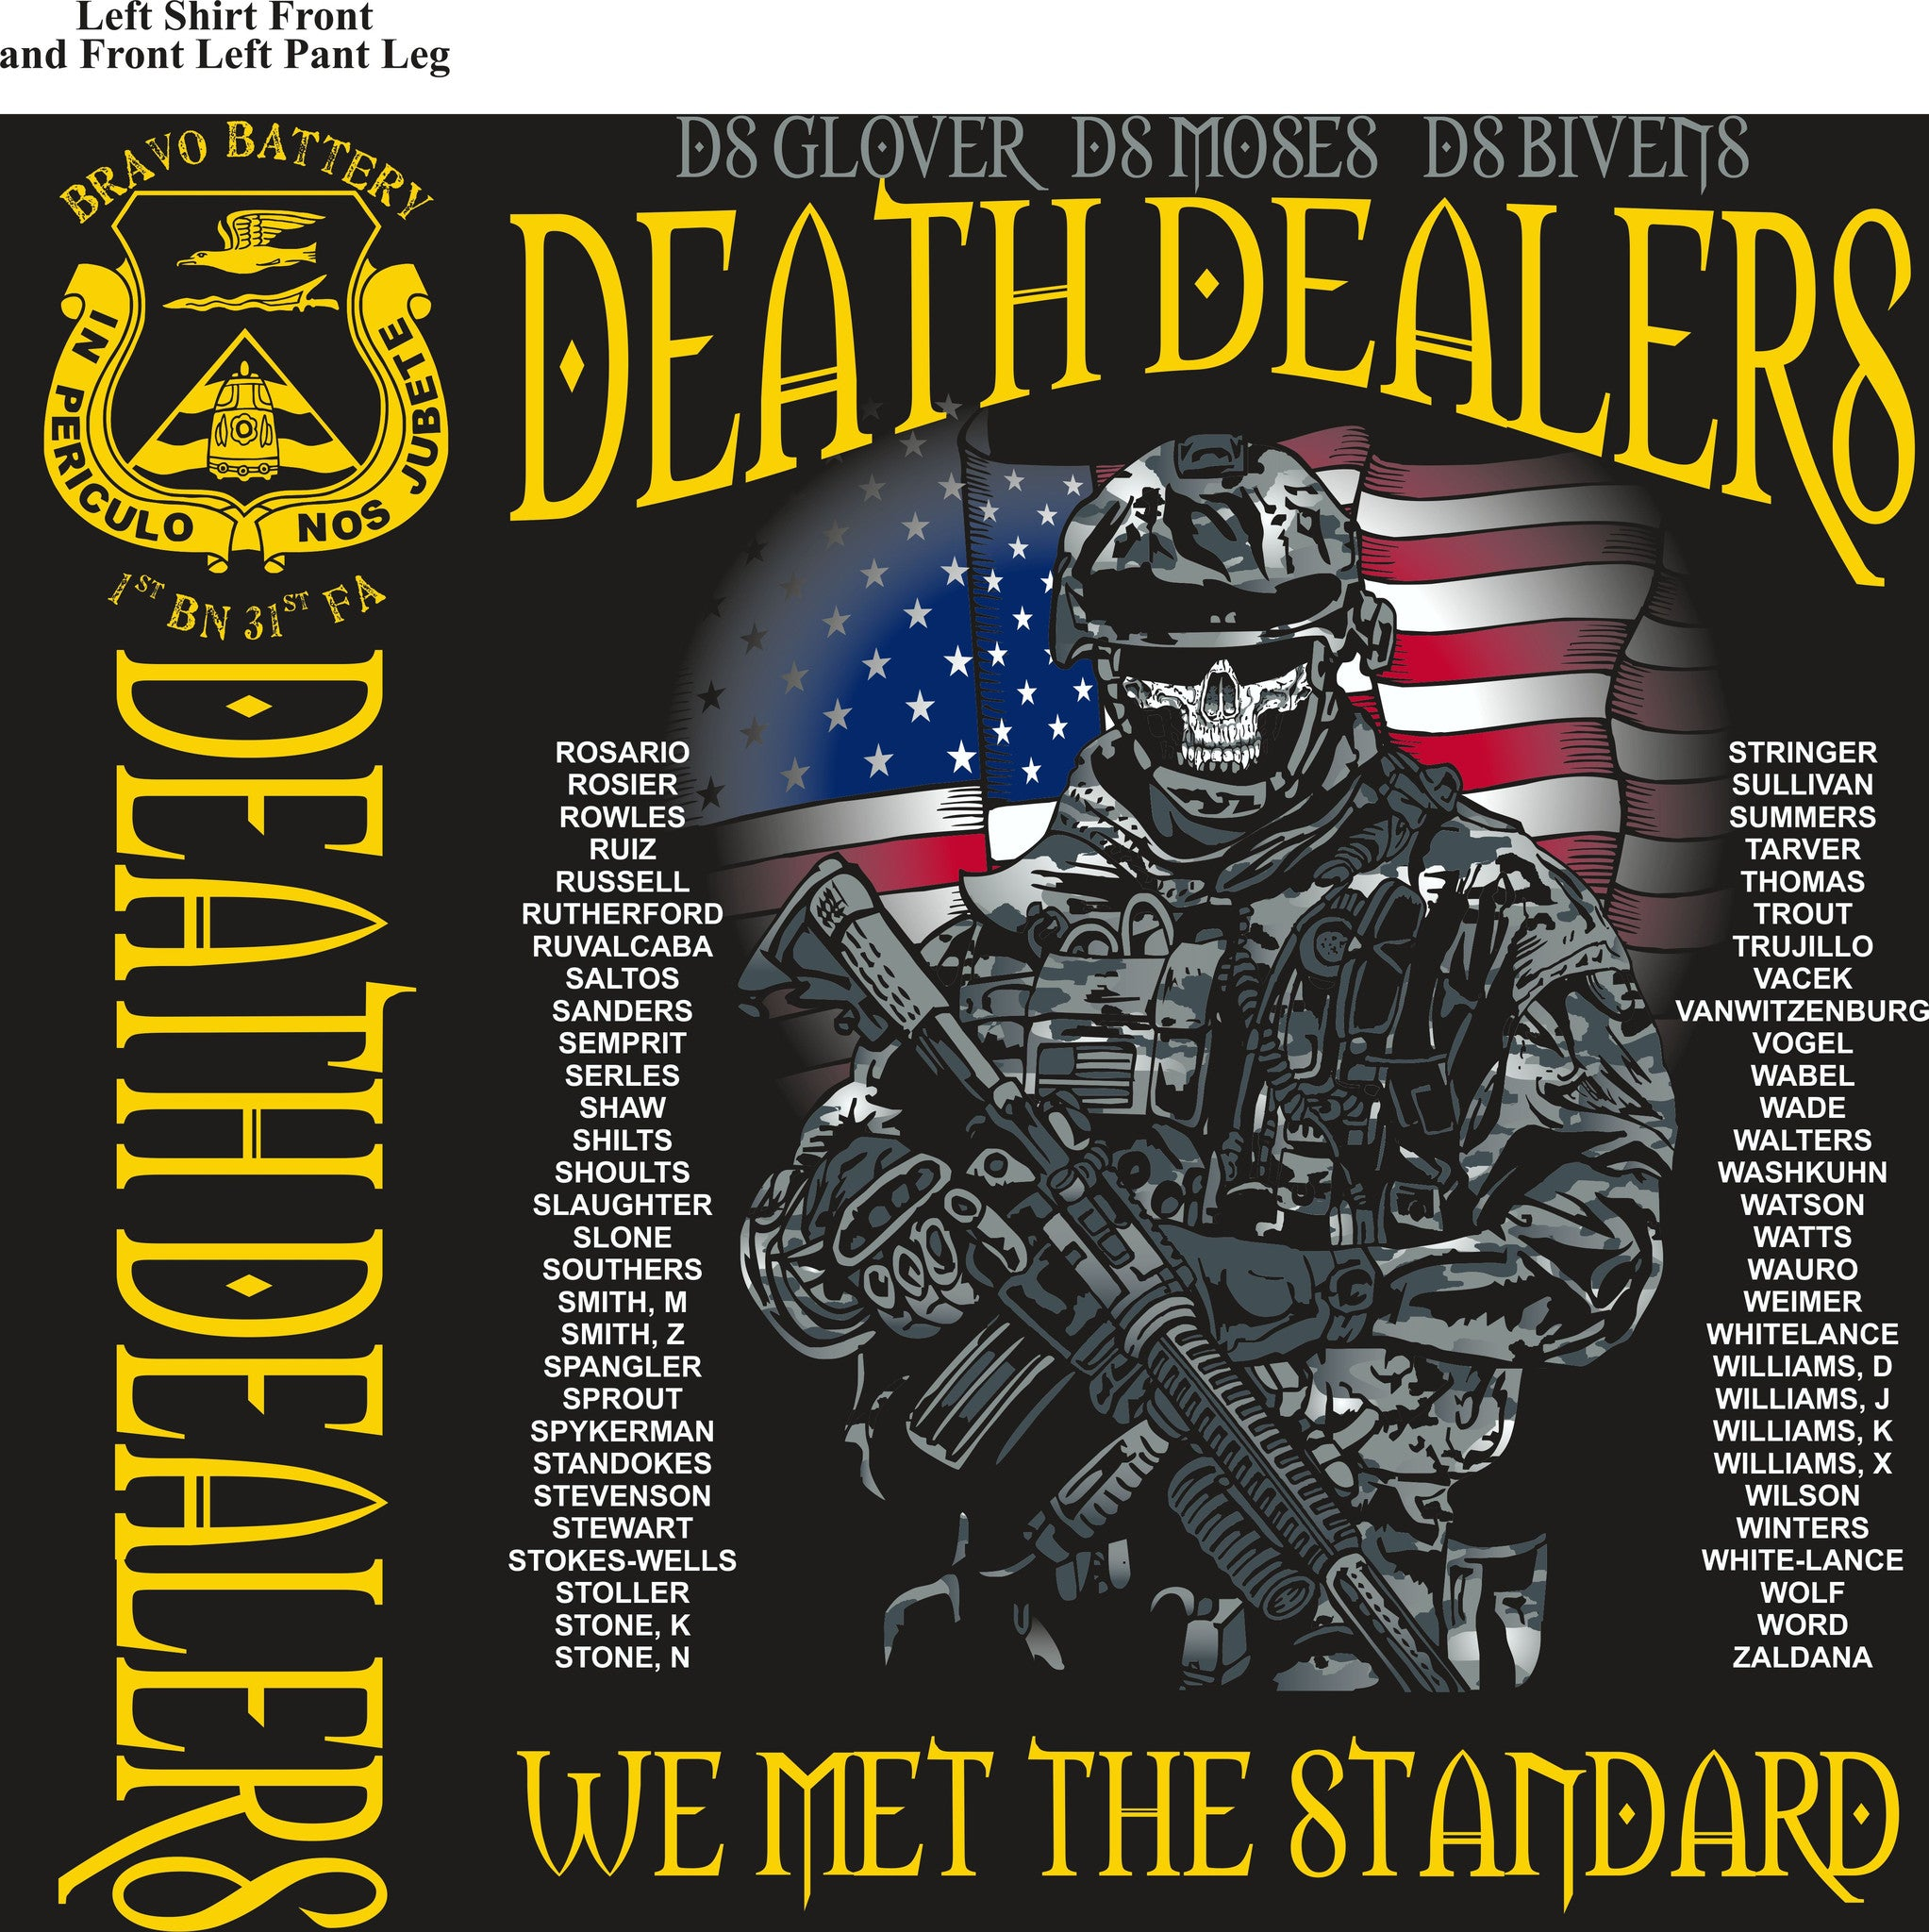 PLATOON SHIRTS (2nd generation print) BRAVO 1st 31st DEATH DEALERS SEPT 2016